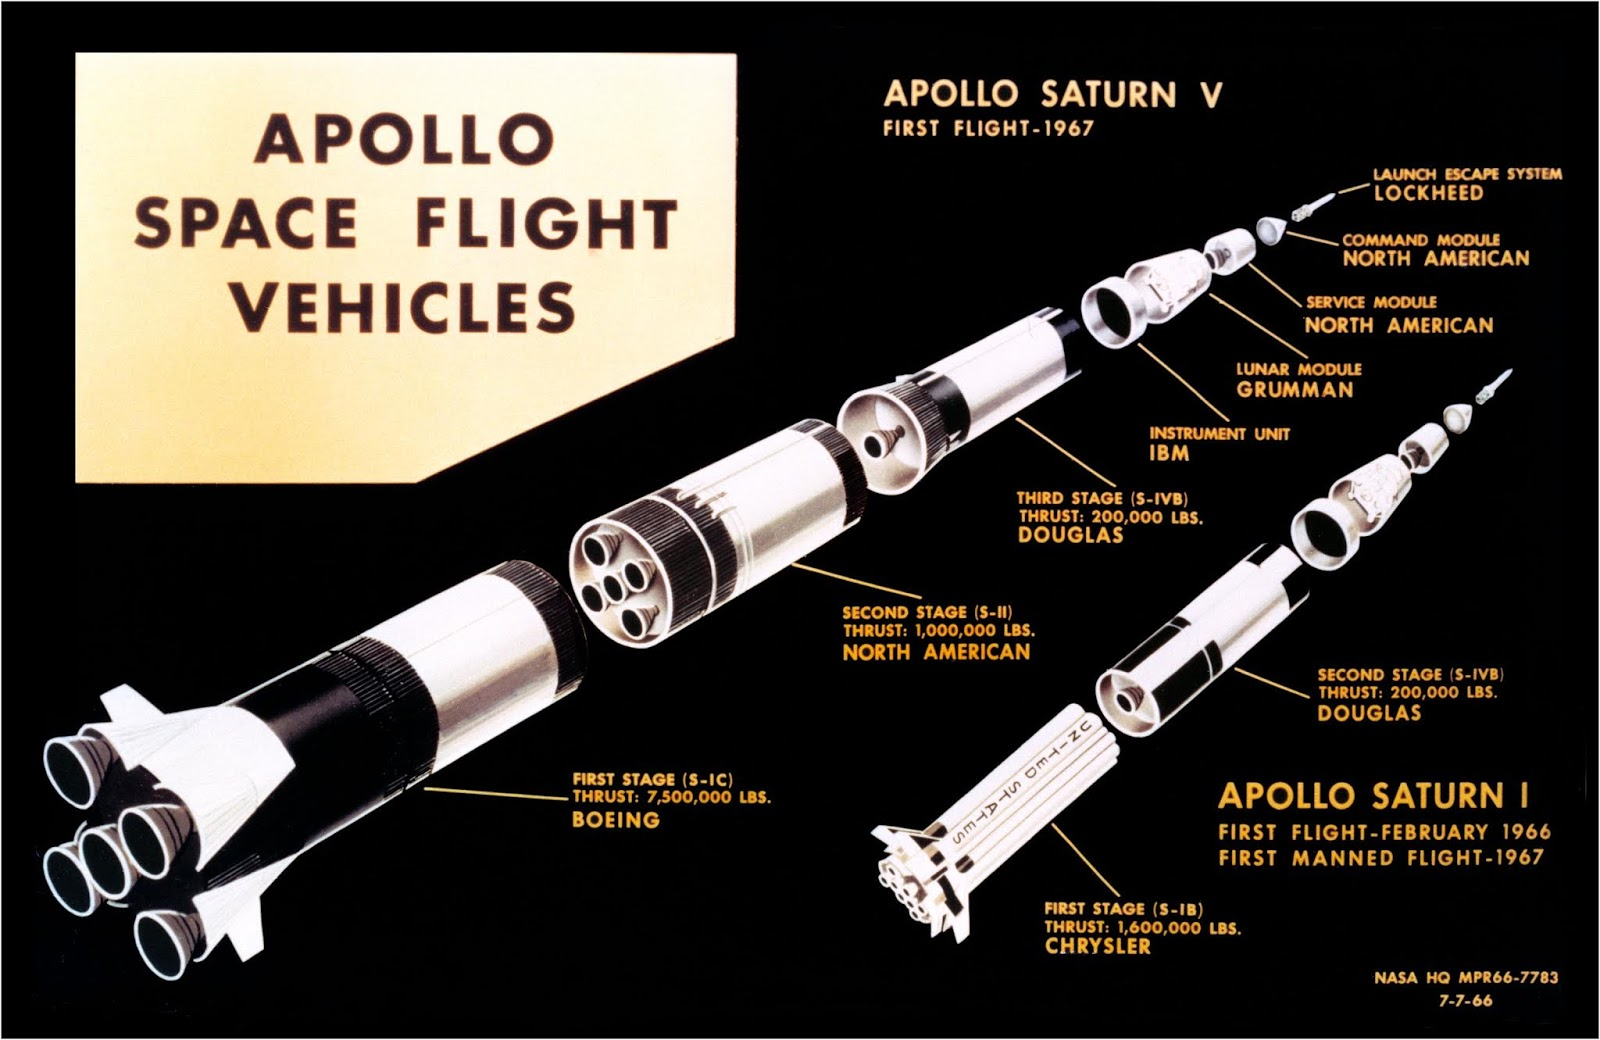 nasa apollo program historical information - photo #6